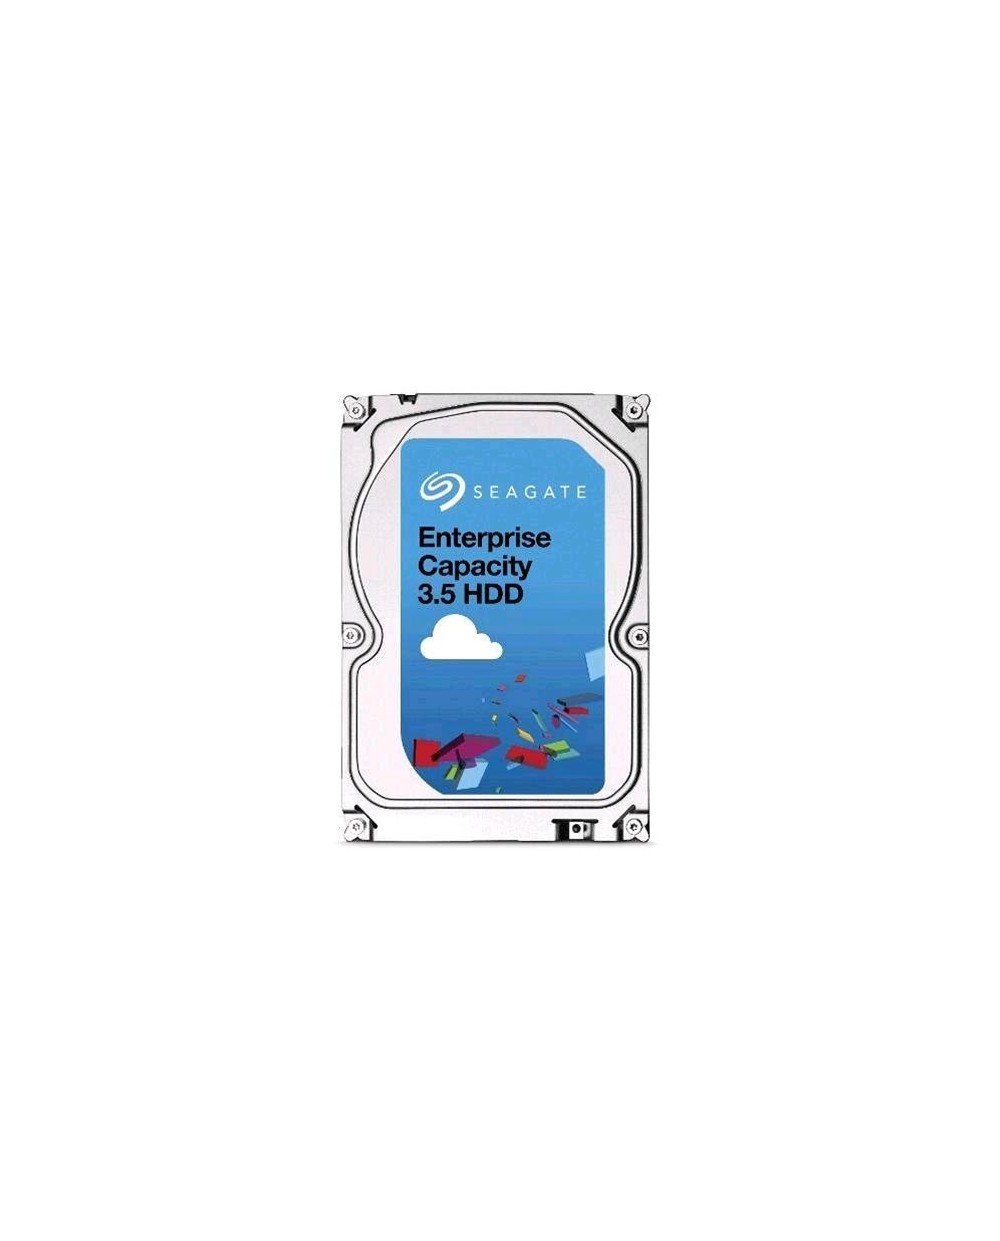 Seagate ST4000NM0025 Capacity 3.5'' HDD 4TB 7200 RPM 512n SAS 12Gb/s 128MB Cache Internal Hard Drive 4000 128 MB Cache 3.5-Inch Internal Bare or OEM Drives